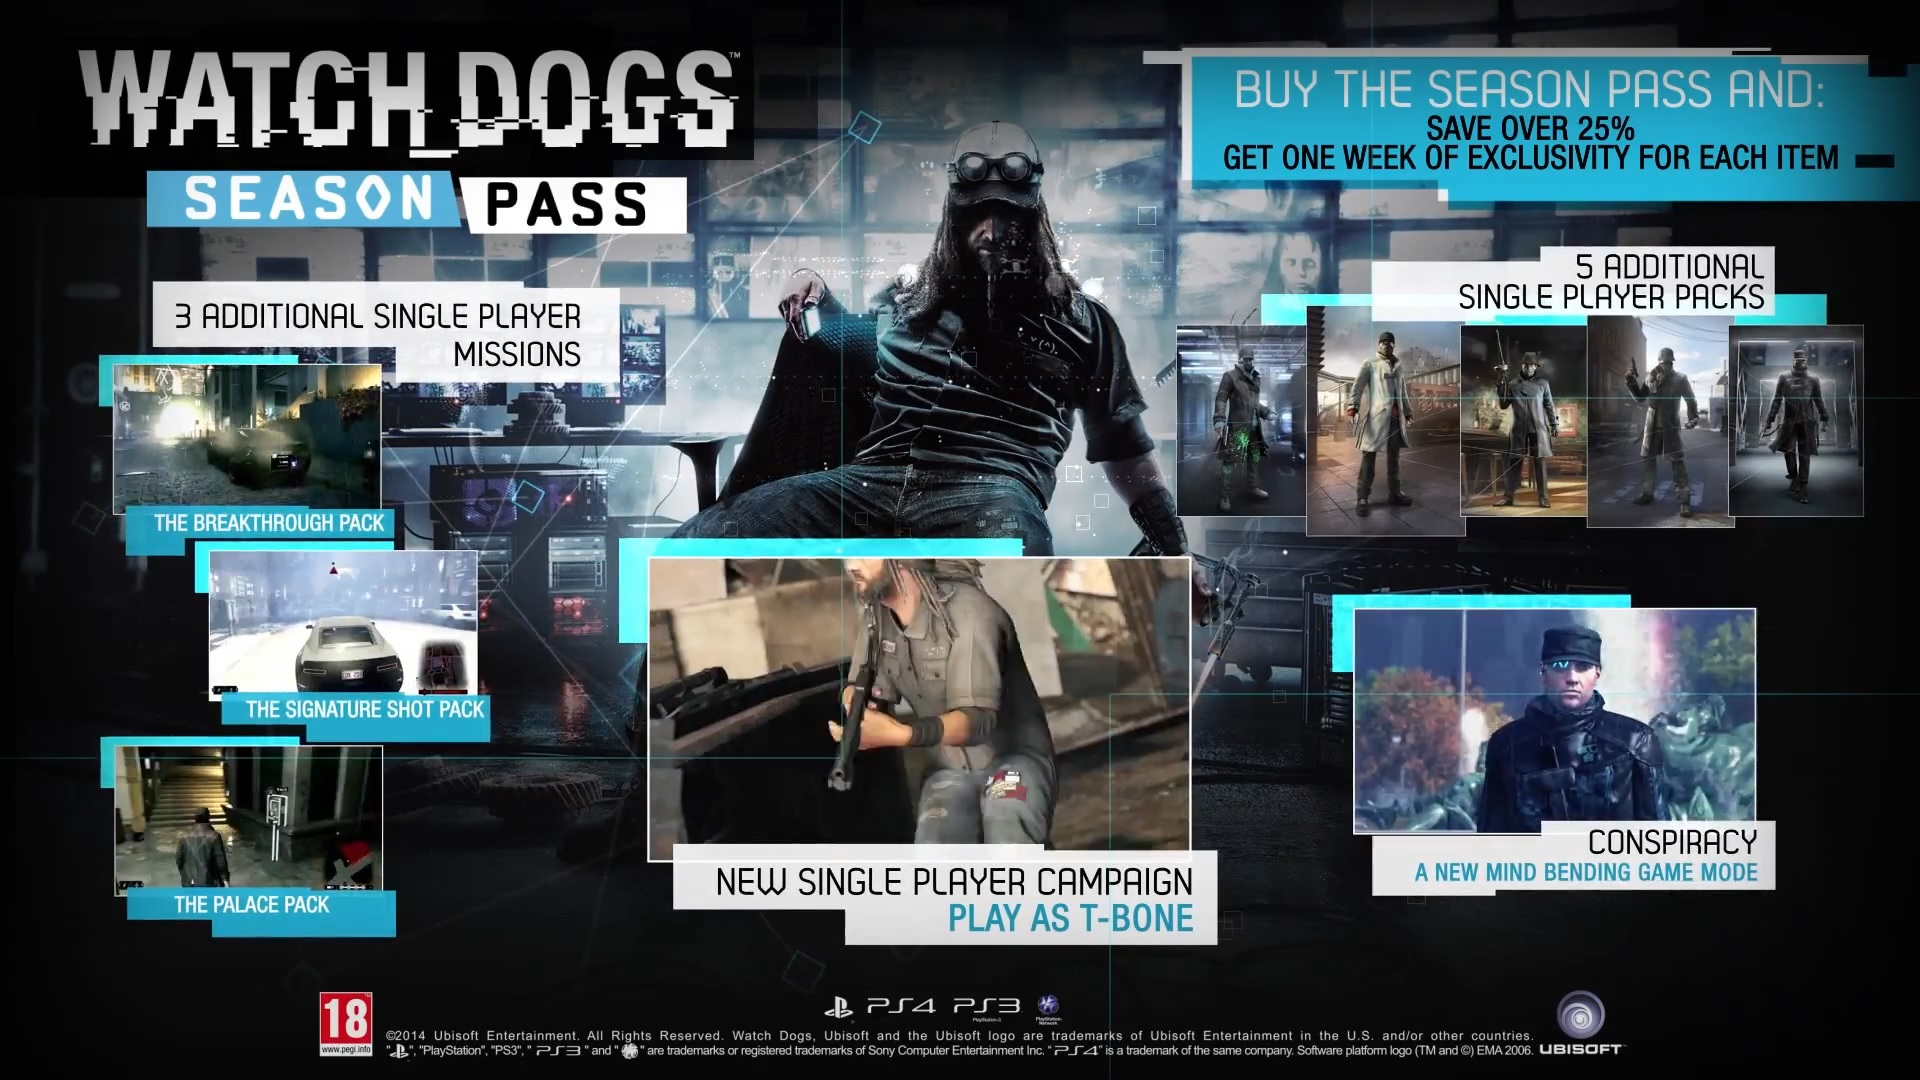 Watch-Dogs-Season-Pass-trailer-showcases-new-singleplayer-campaign-Digital-Trip-Game-Mode-and-a-ton-of-additional-content